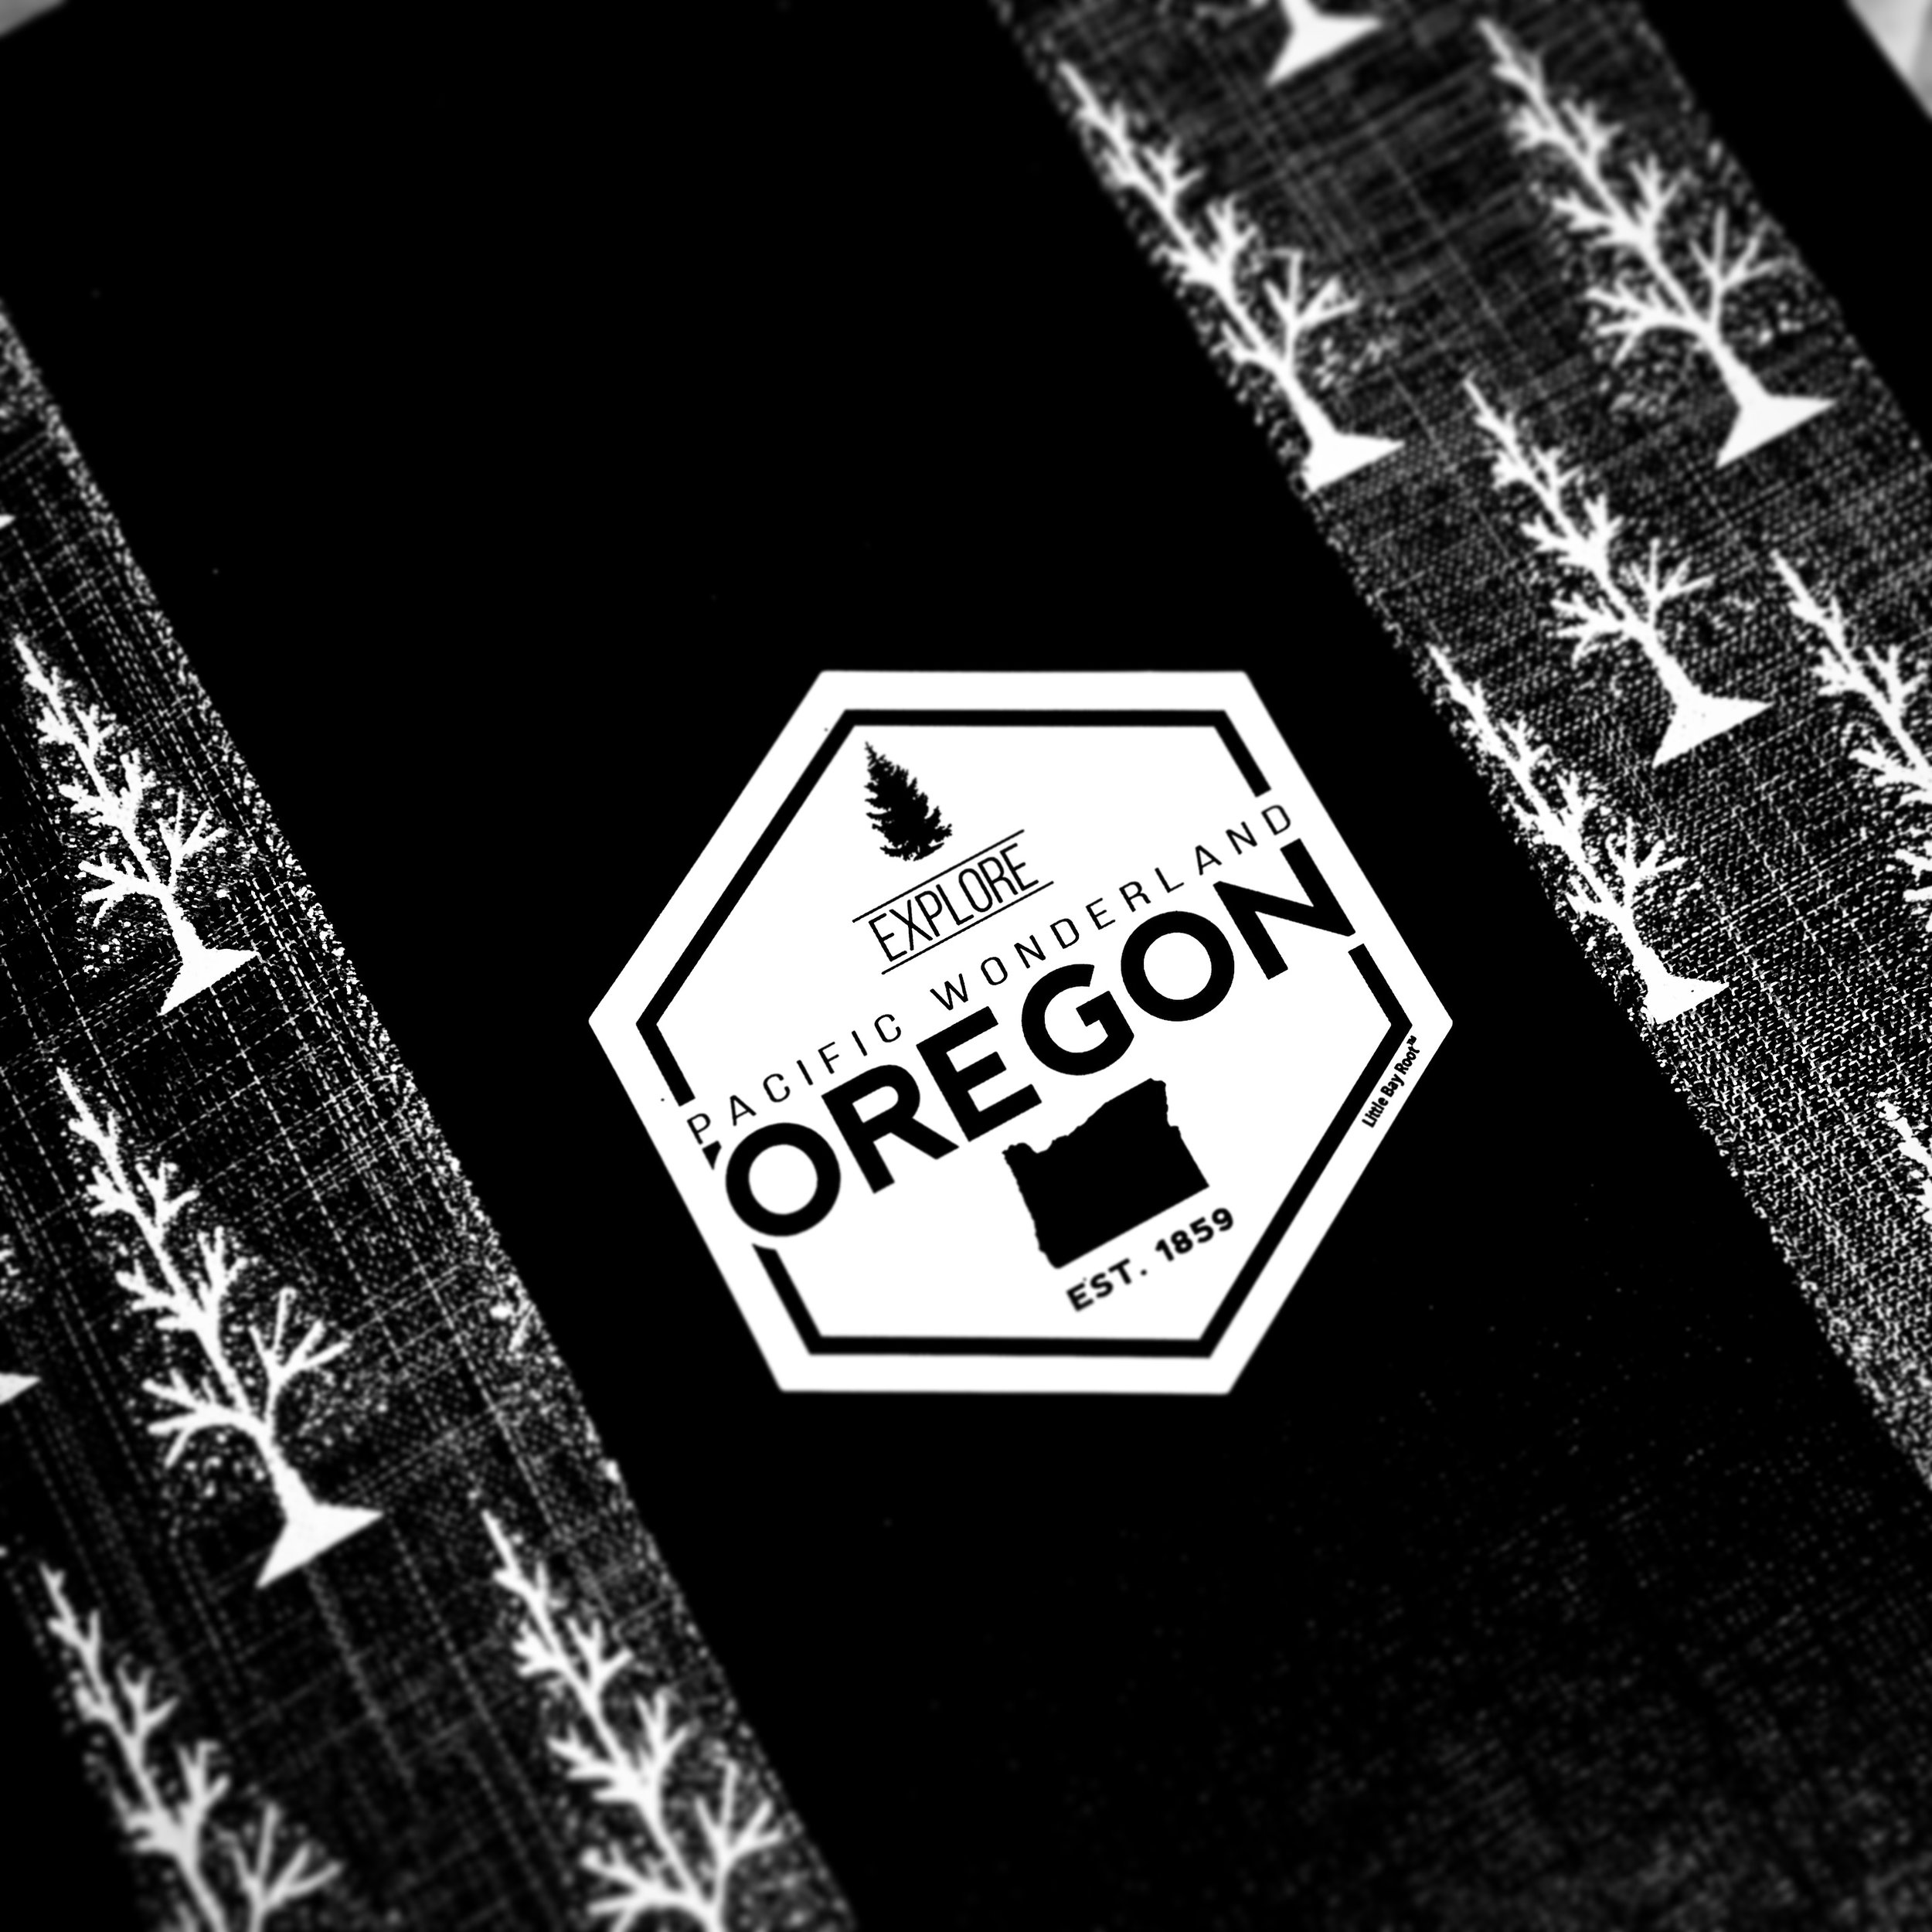 Oregon mADE Gift Boxes - Featuring foods made in Oregon and featuring Portland, Bend & other 'foodie' cities